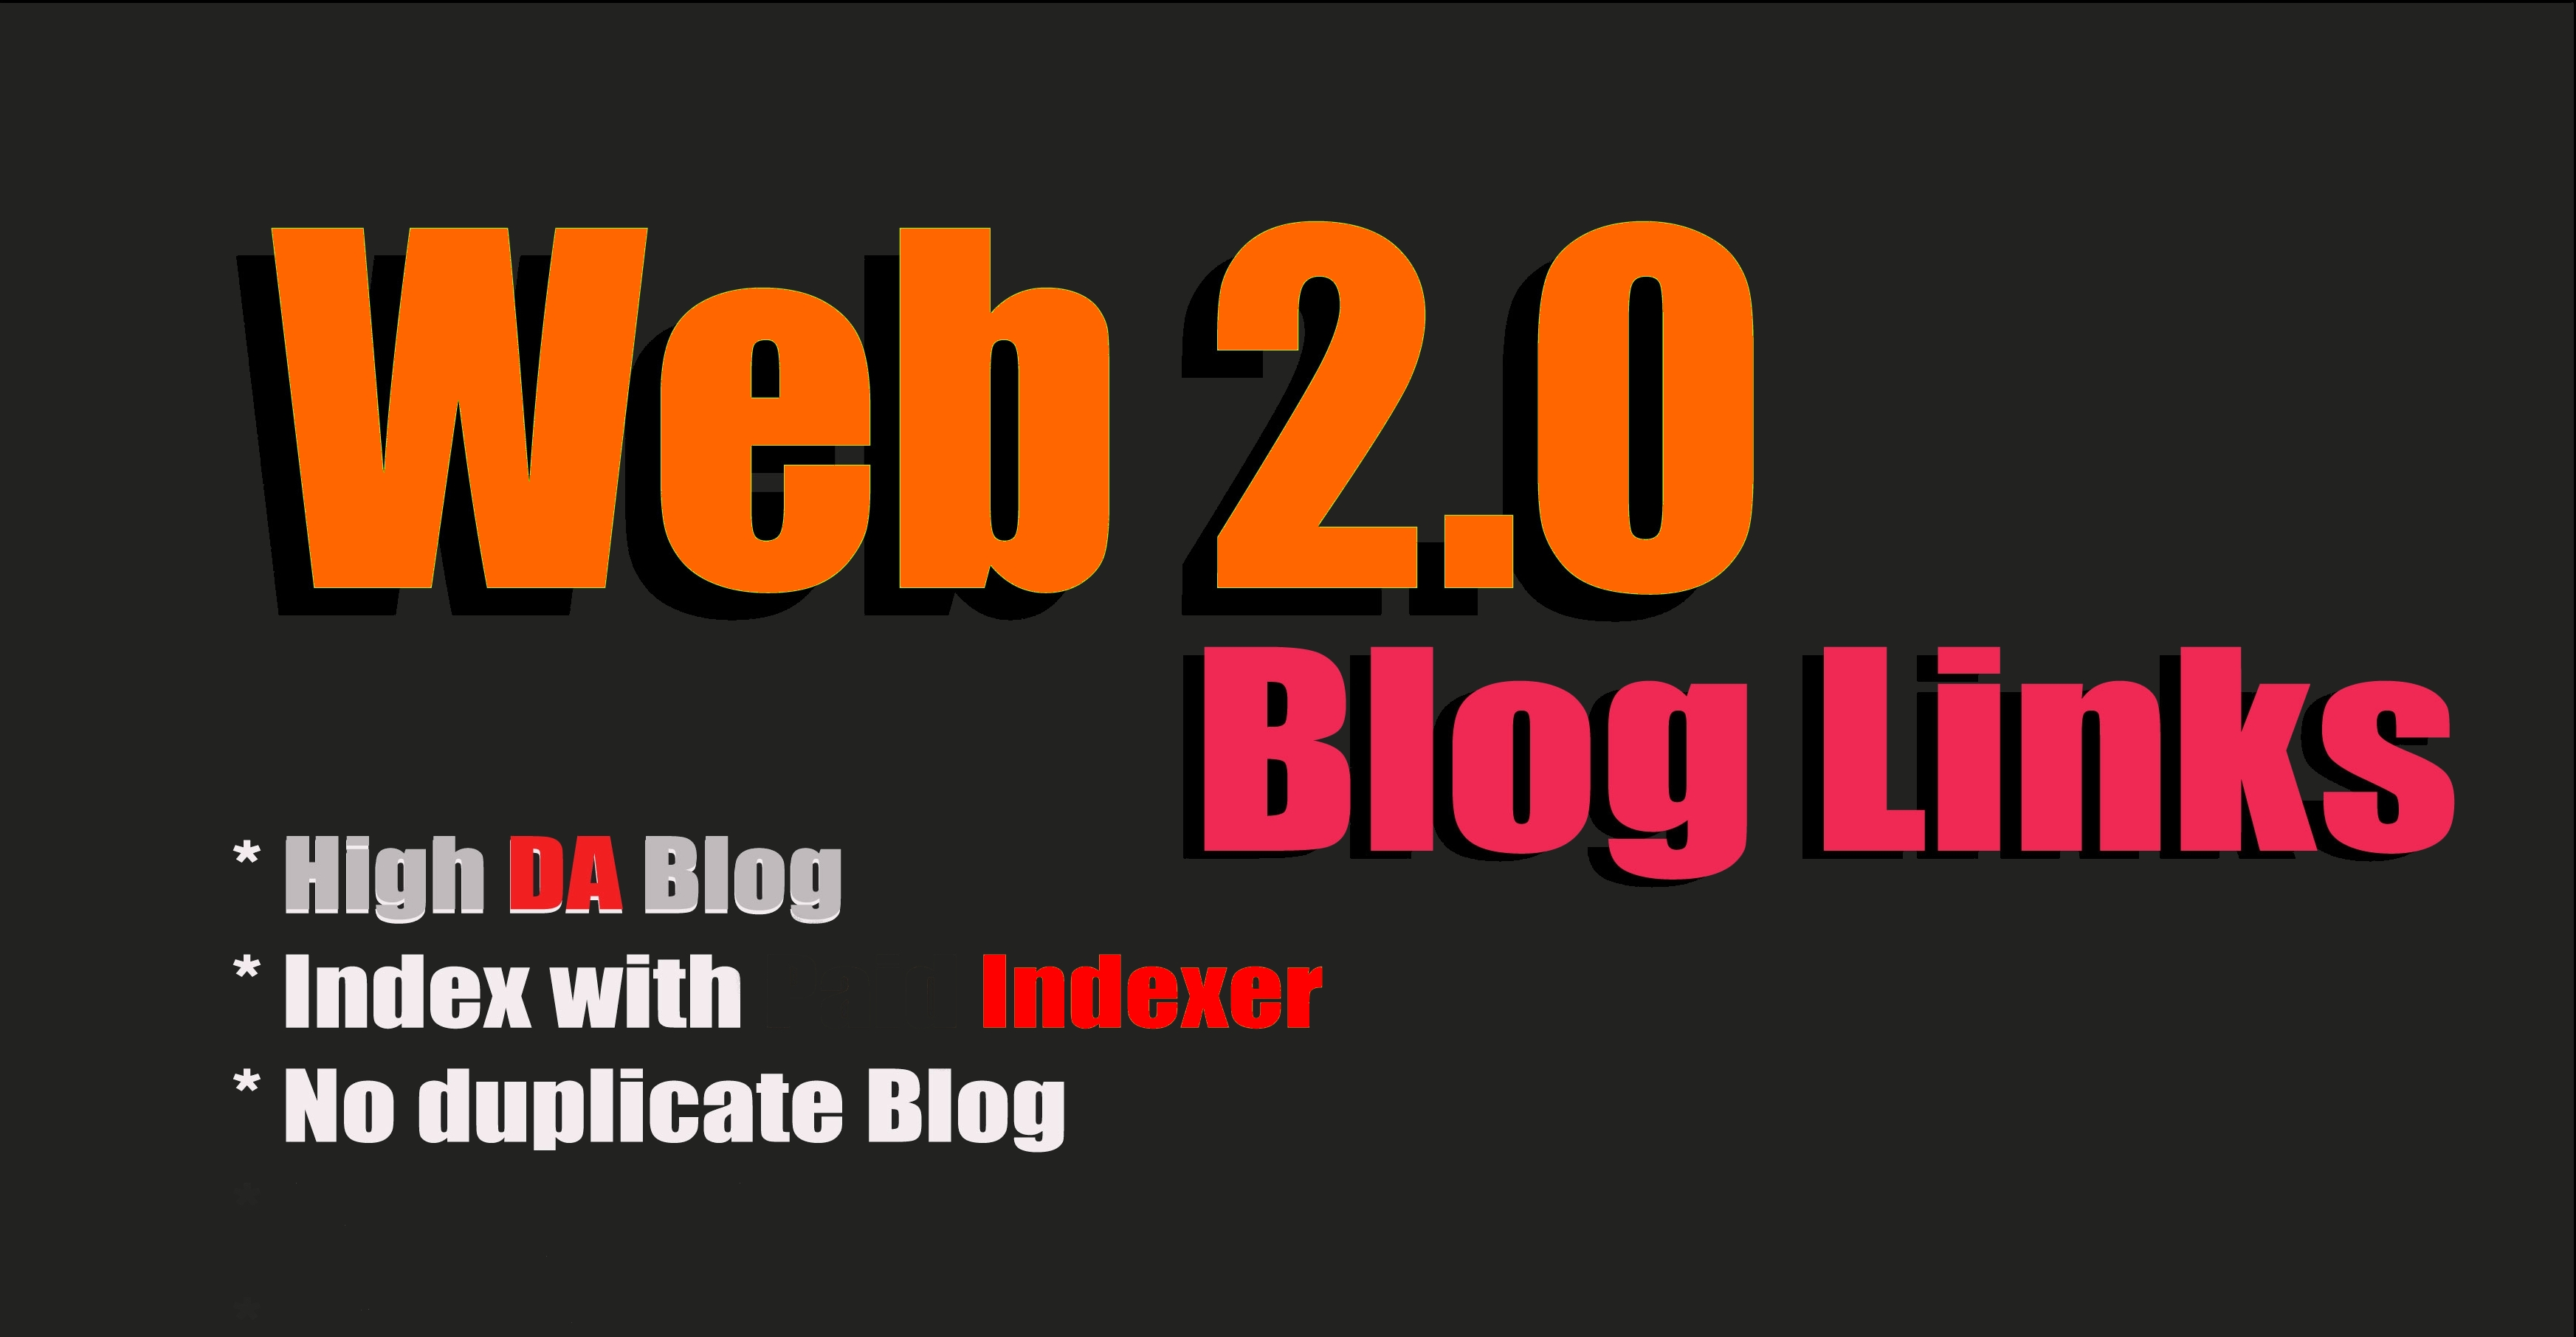 Build 40+ High Quality Web2.0 Blogs high DA+40